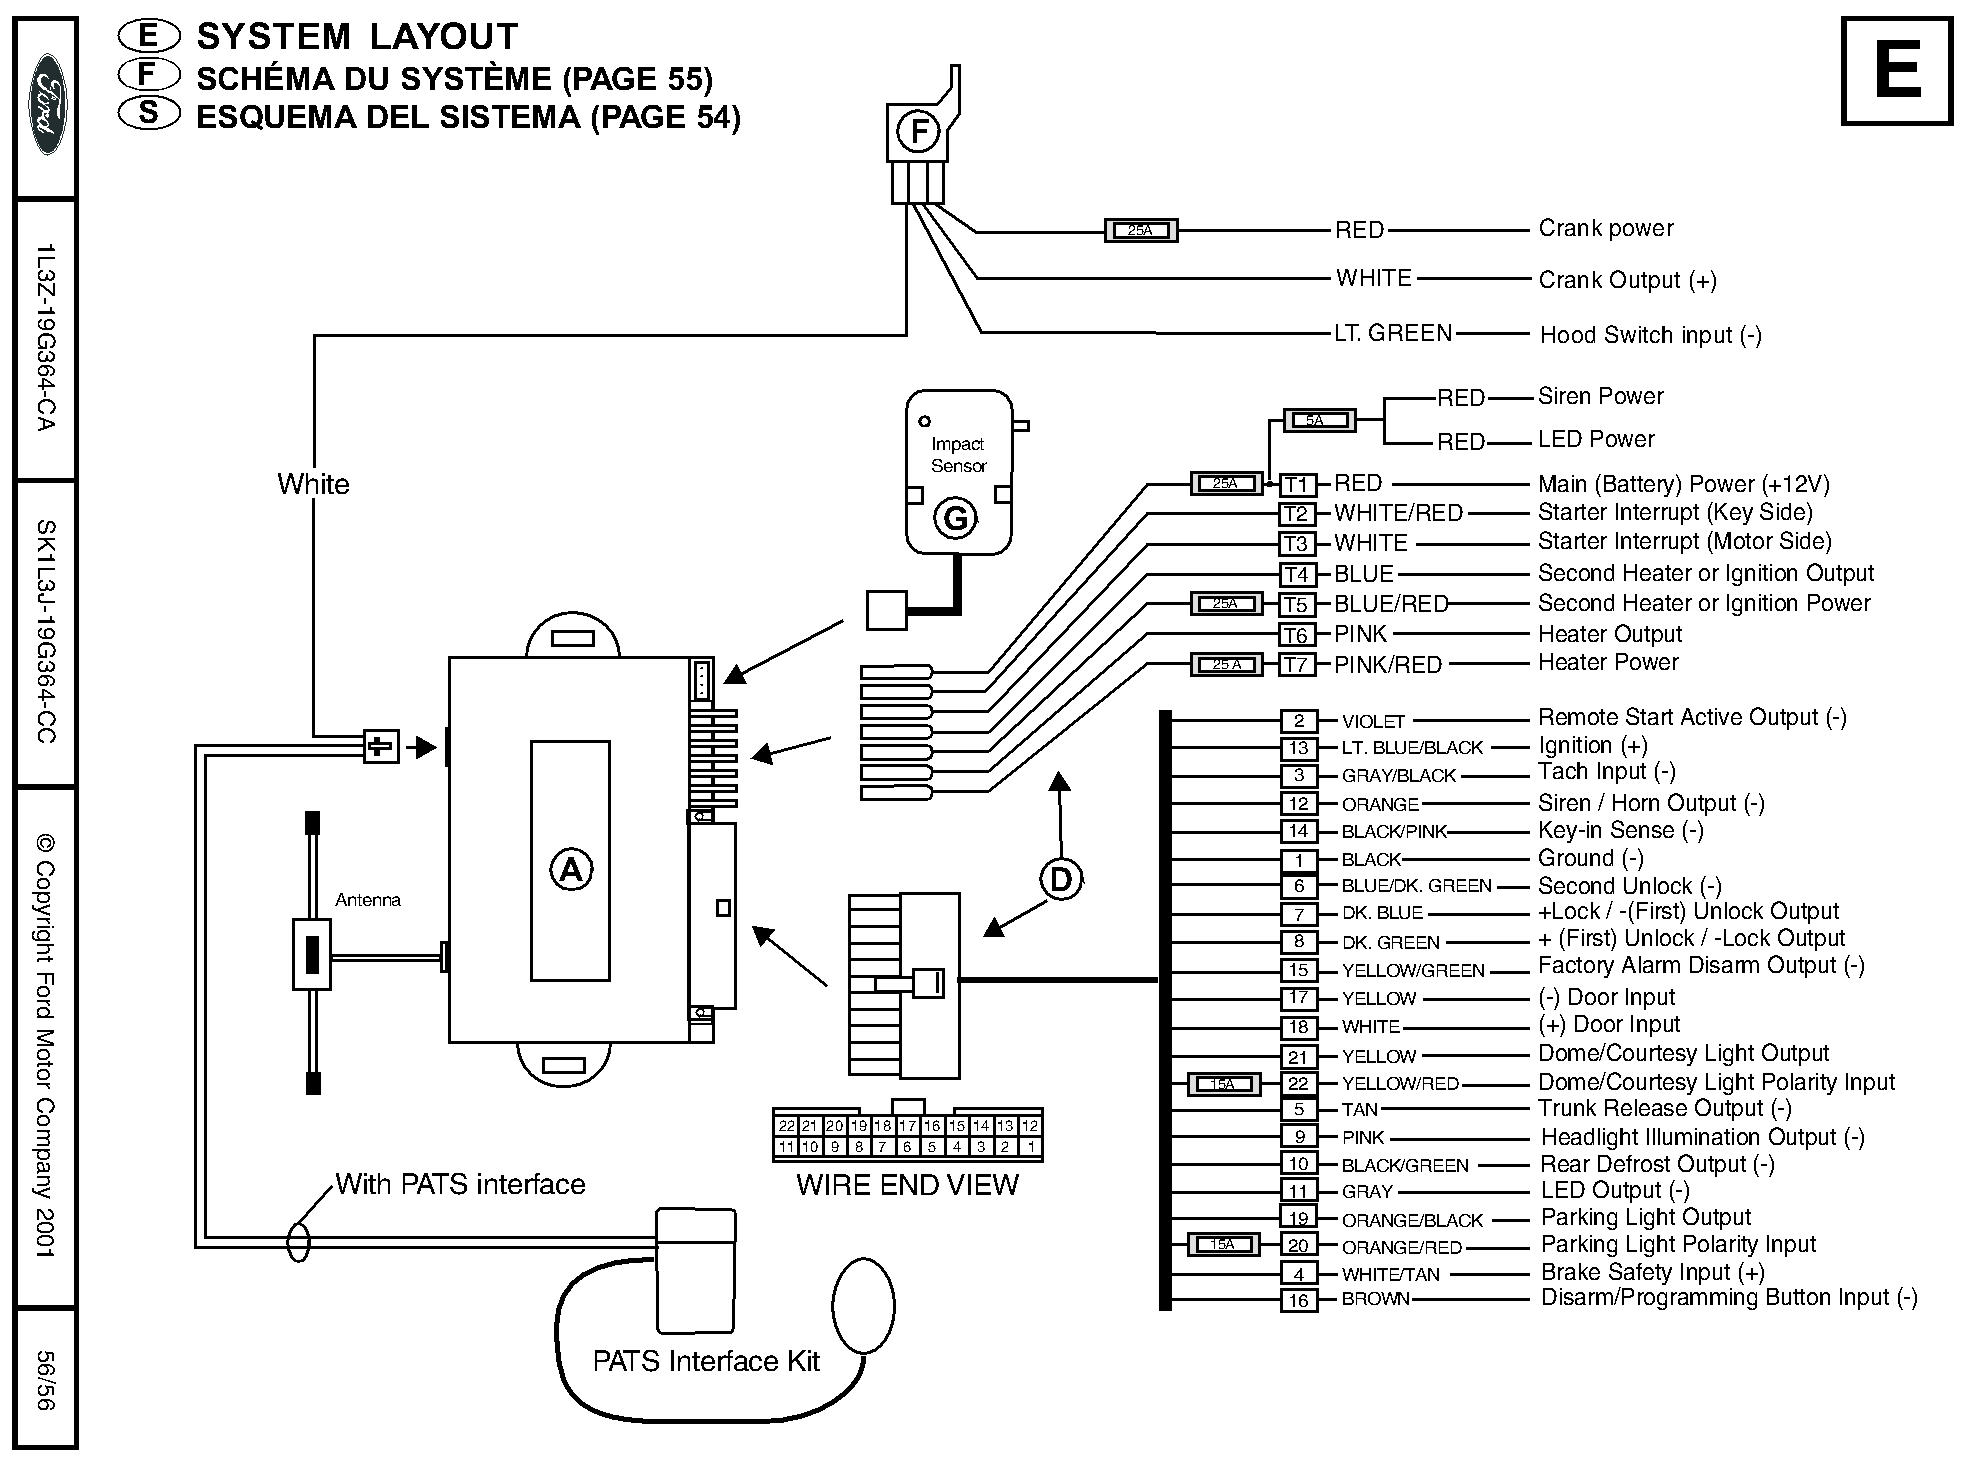 toyota rear ke diagram  toyota  free engine image for user